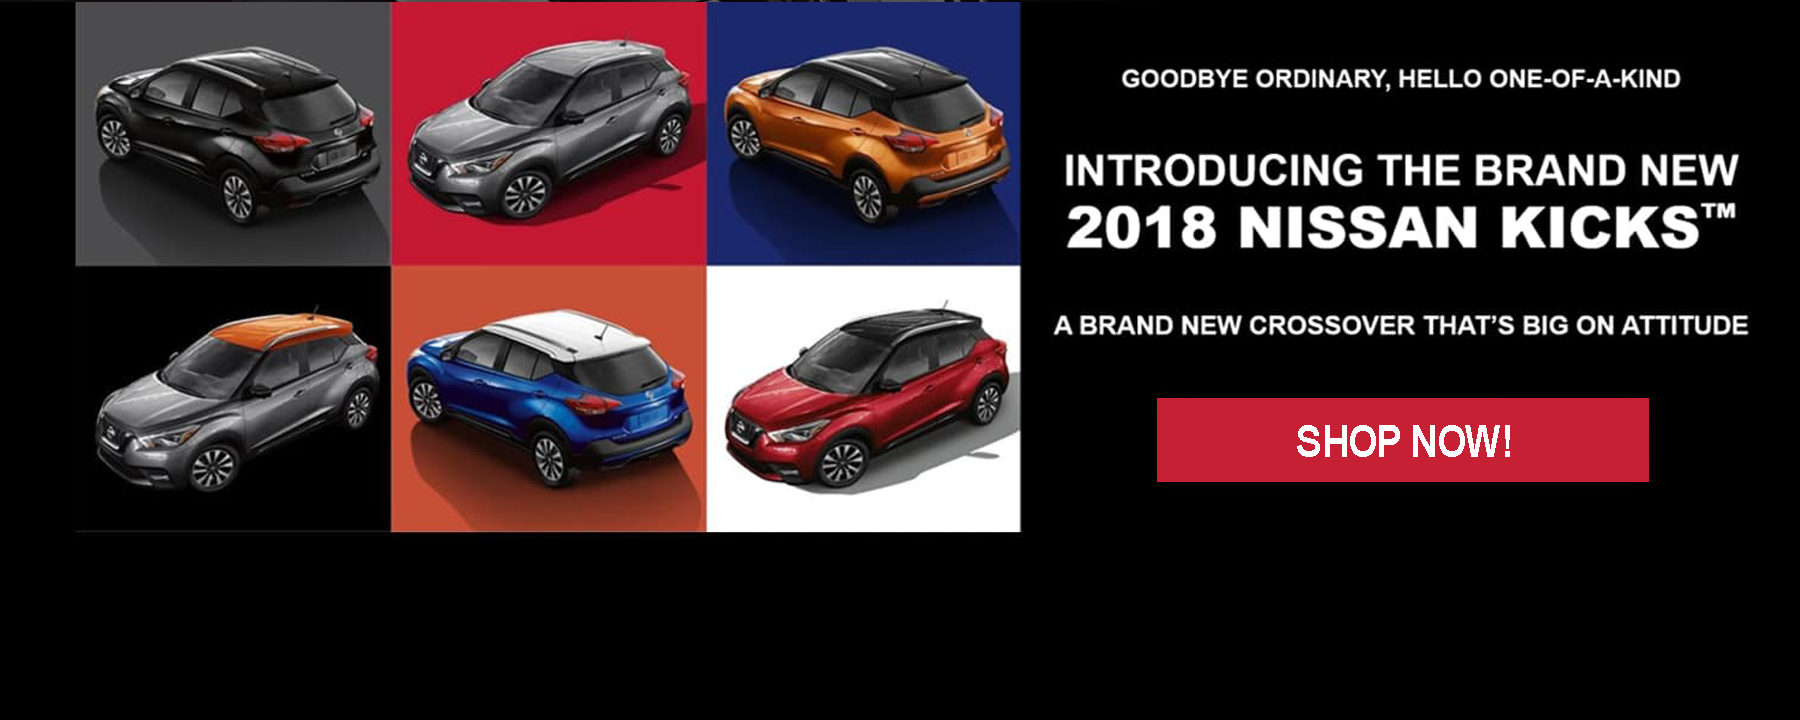 Introducing the 2018 Nissan Kicks available NOW at Berman Nissan of Chicago!